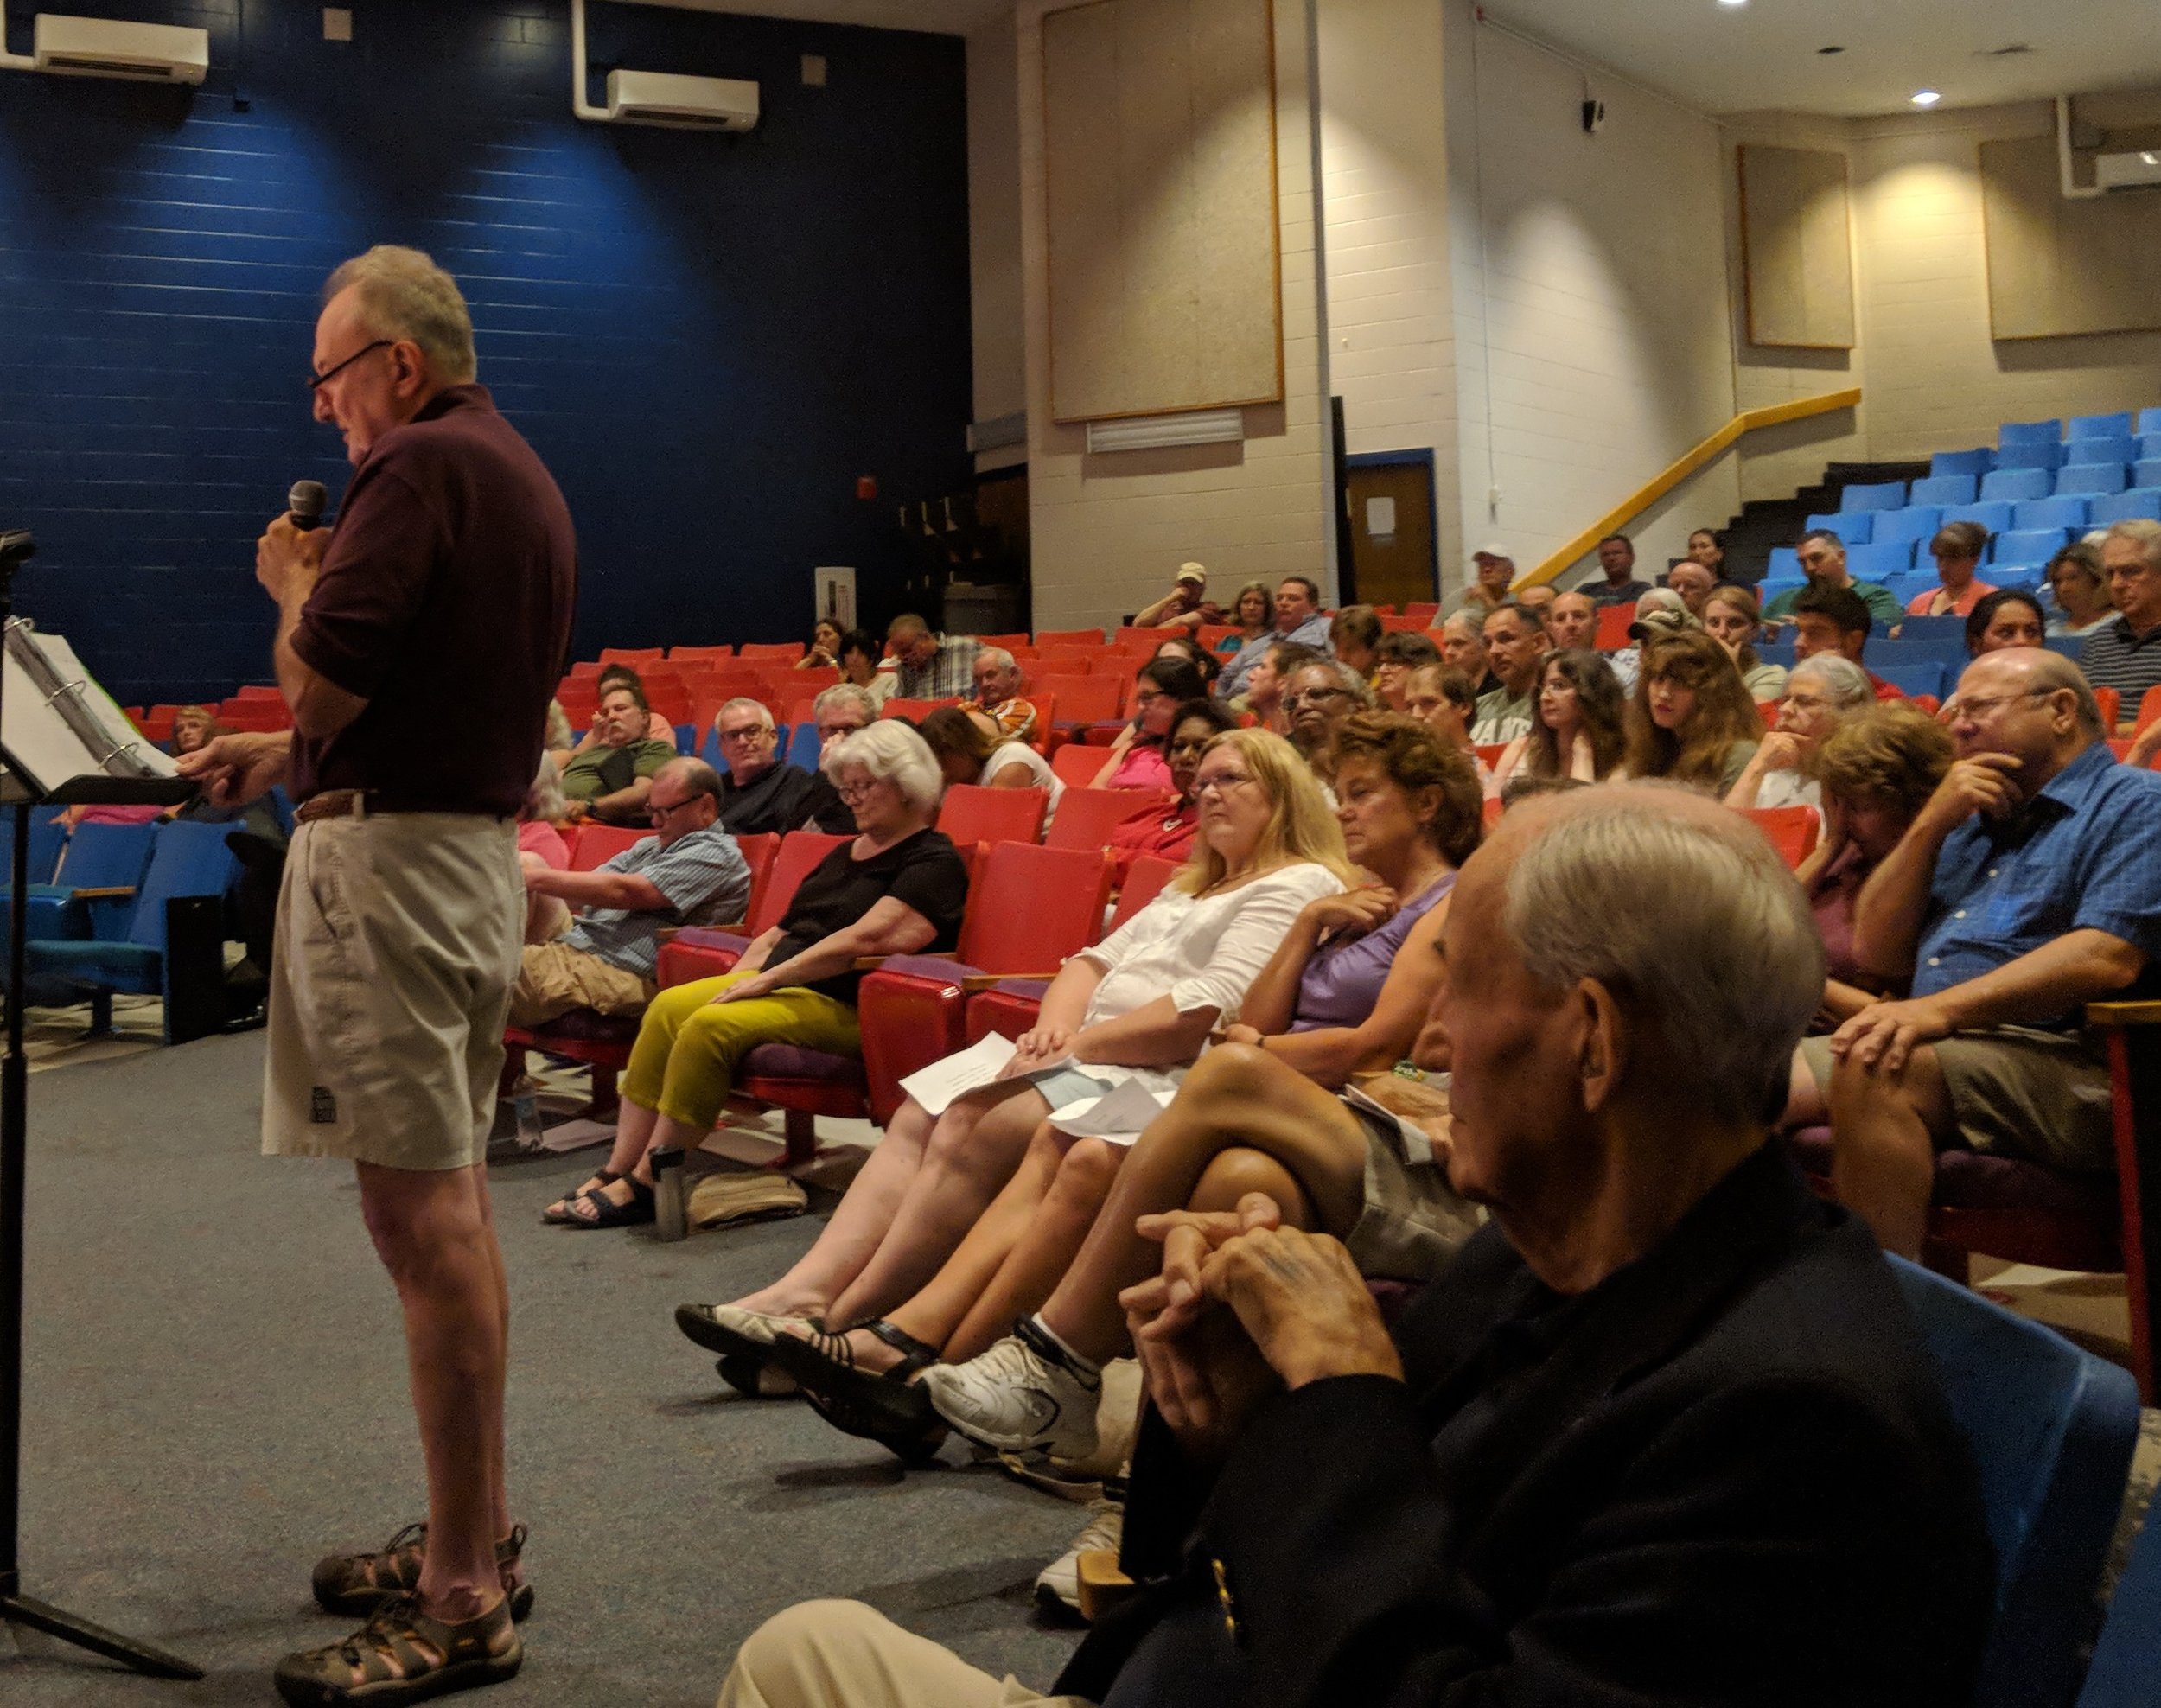 Some 160 residents attended an Aug. 6 public hearing for one of the more than 19 proposed and approved solar projects in Hopkinton, R.I., several of them of the utility-scale variety. (Tim Faulkner/ecoRI News)